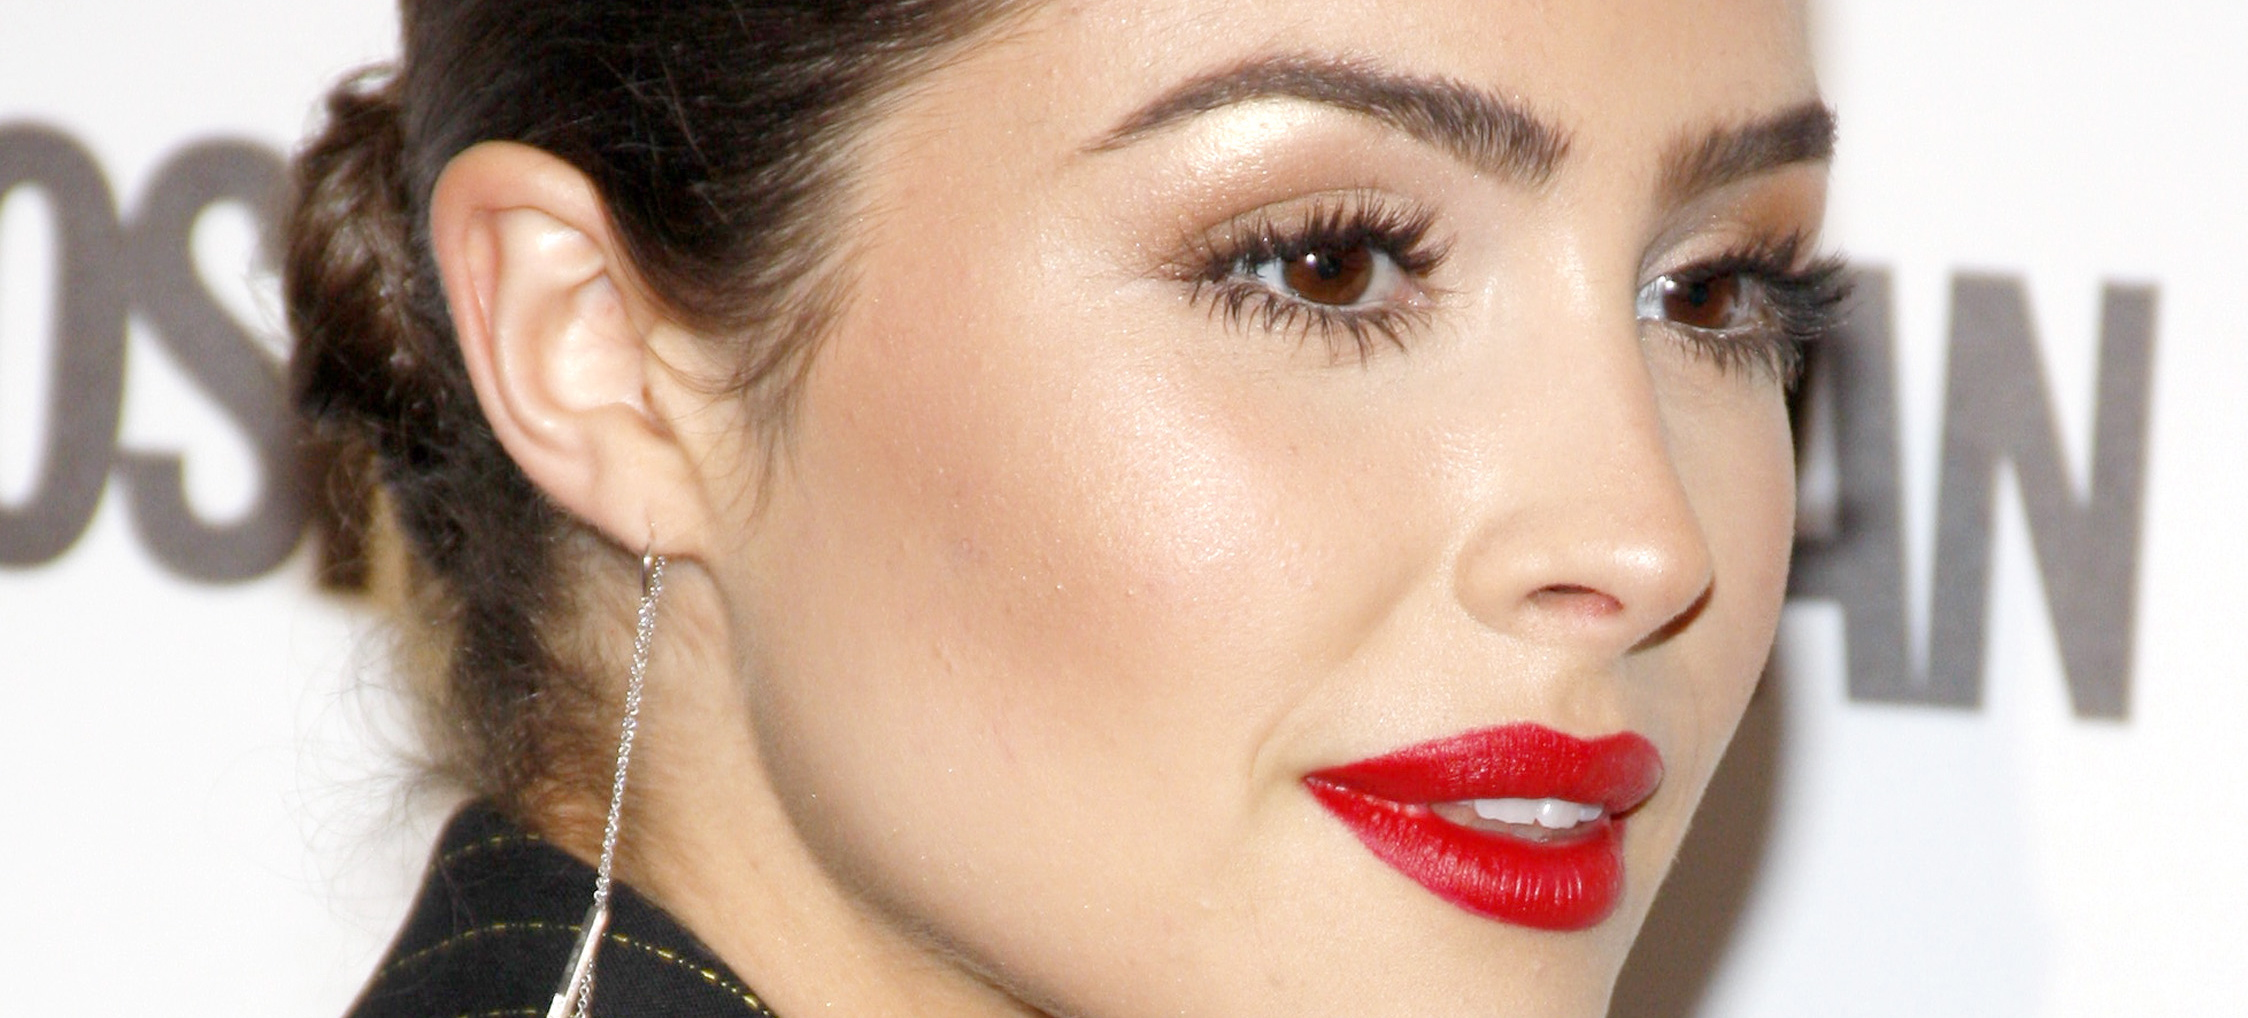 Red Lipstick: The Dos and Don'ts